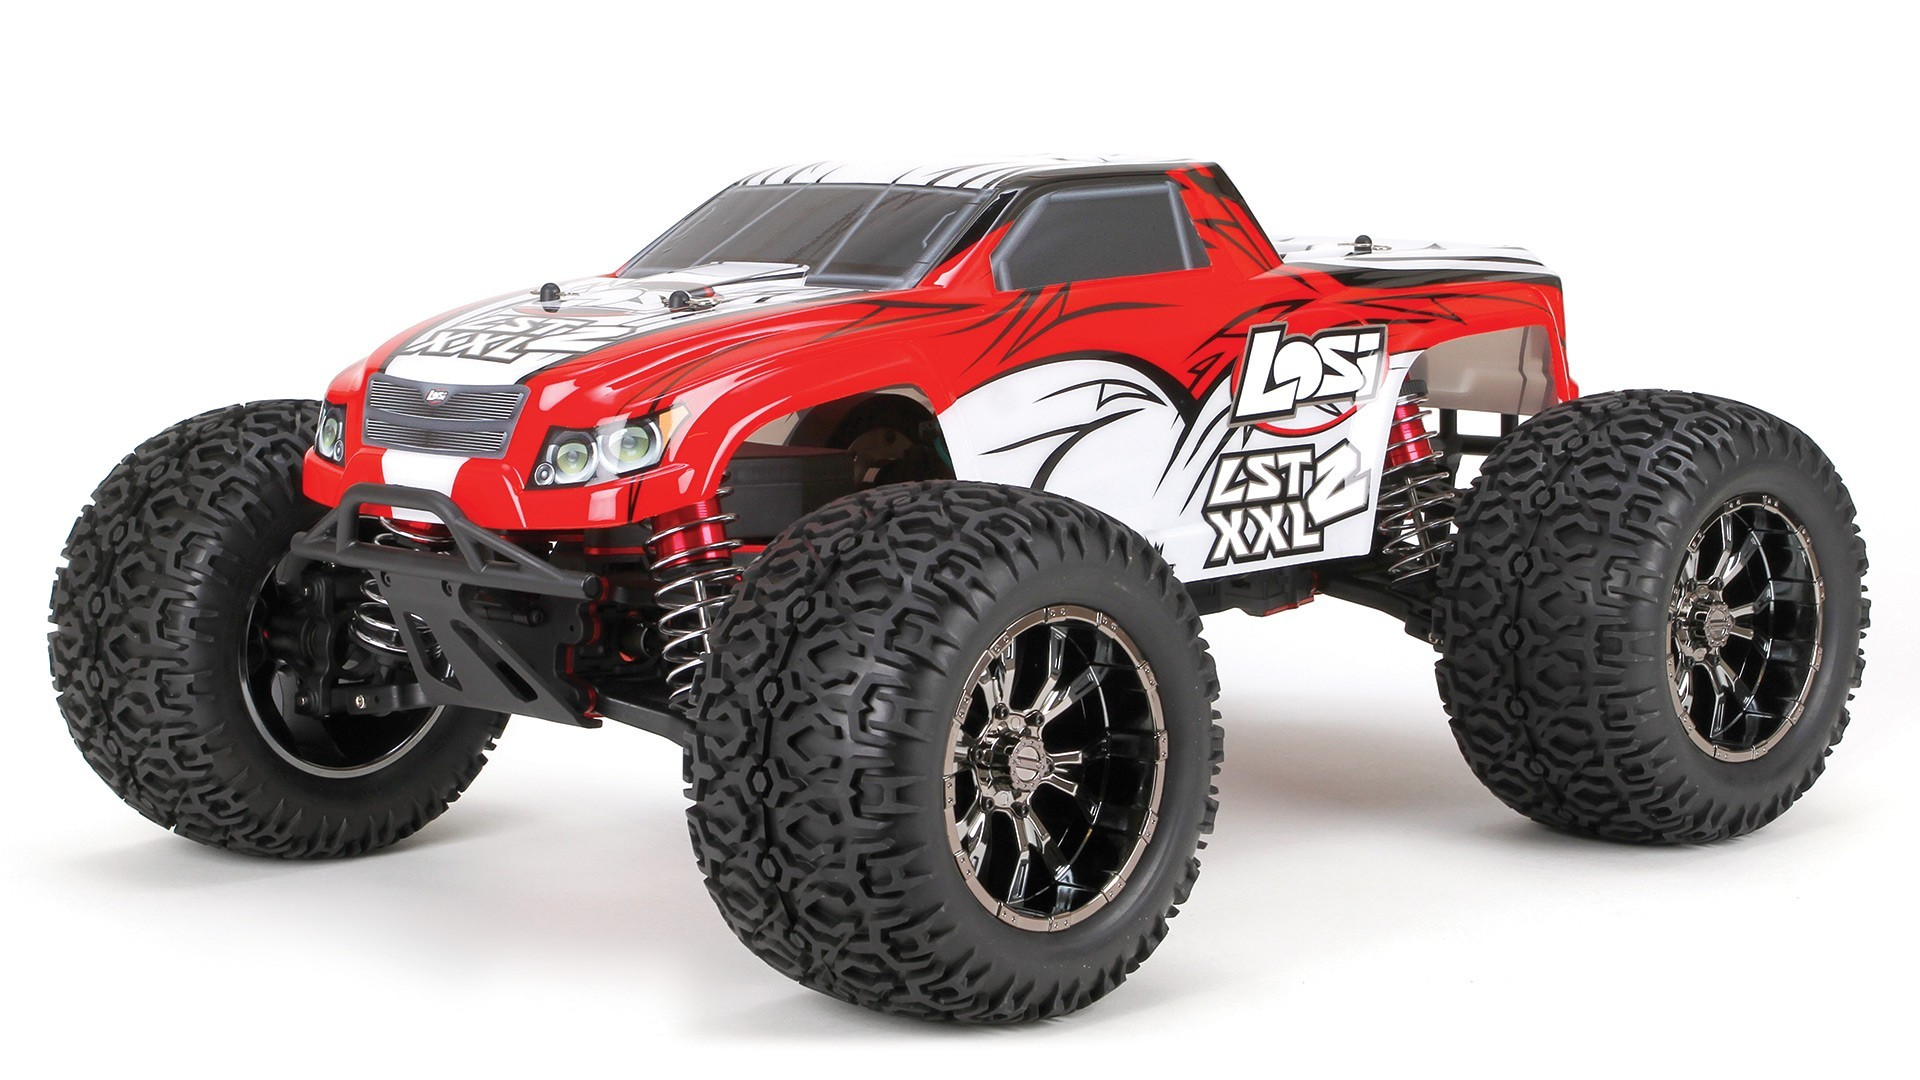 rc verbrenner offroad monstertruck losi lst xxl 2 1 8 4wd. Black Bedroom Furniture Sets. Home Design Ideas